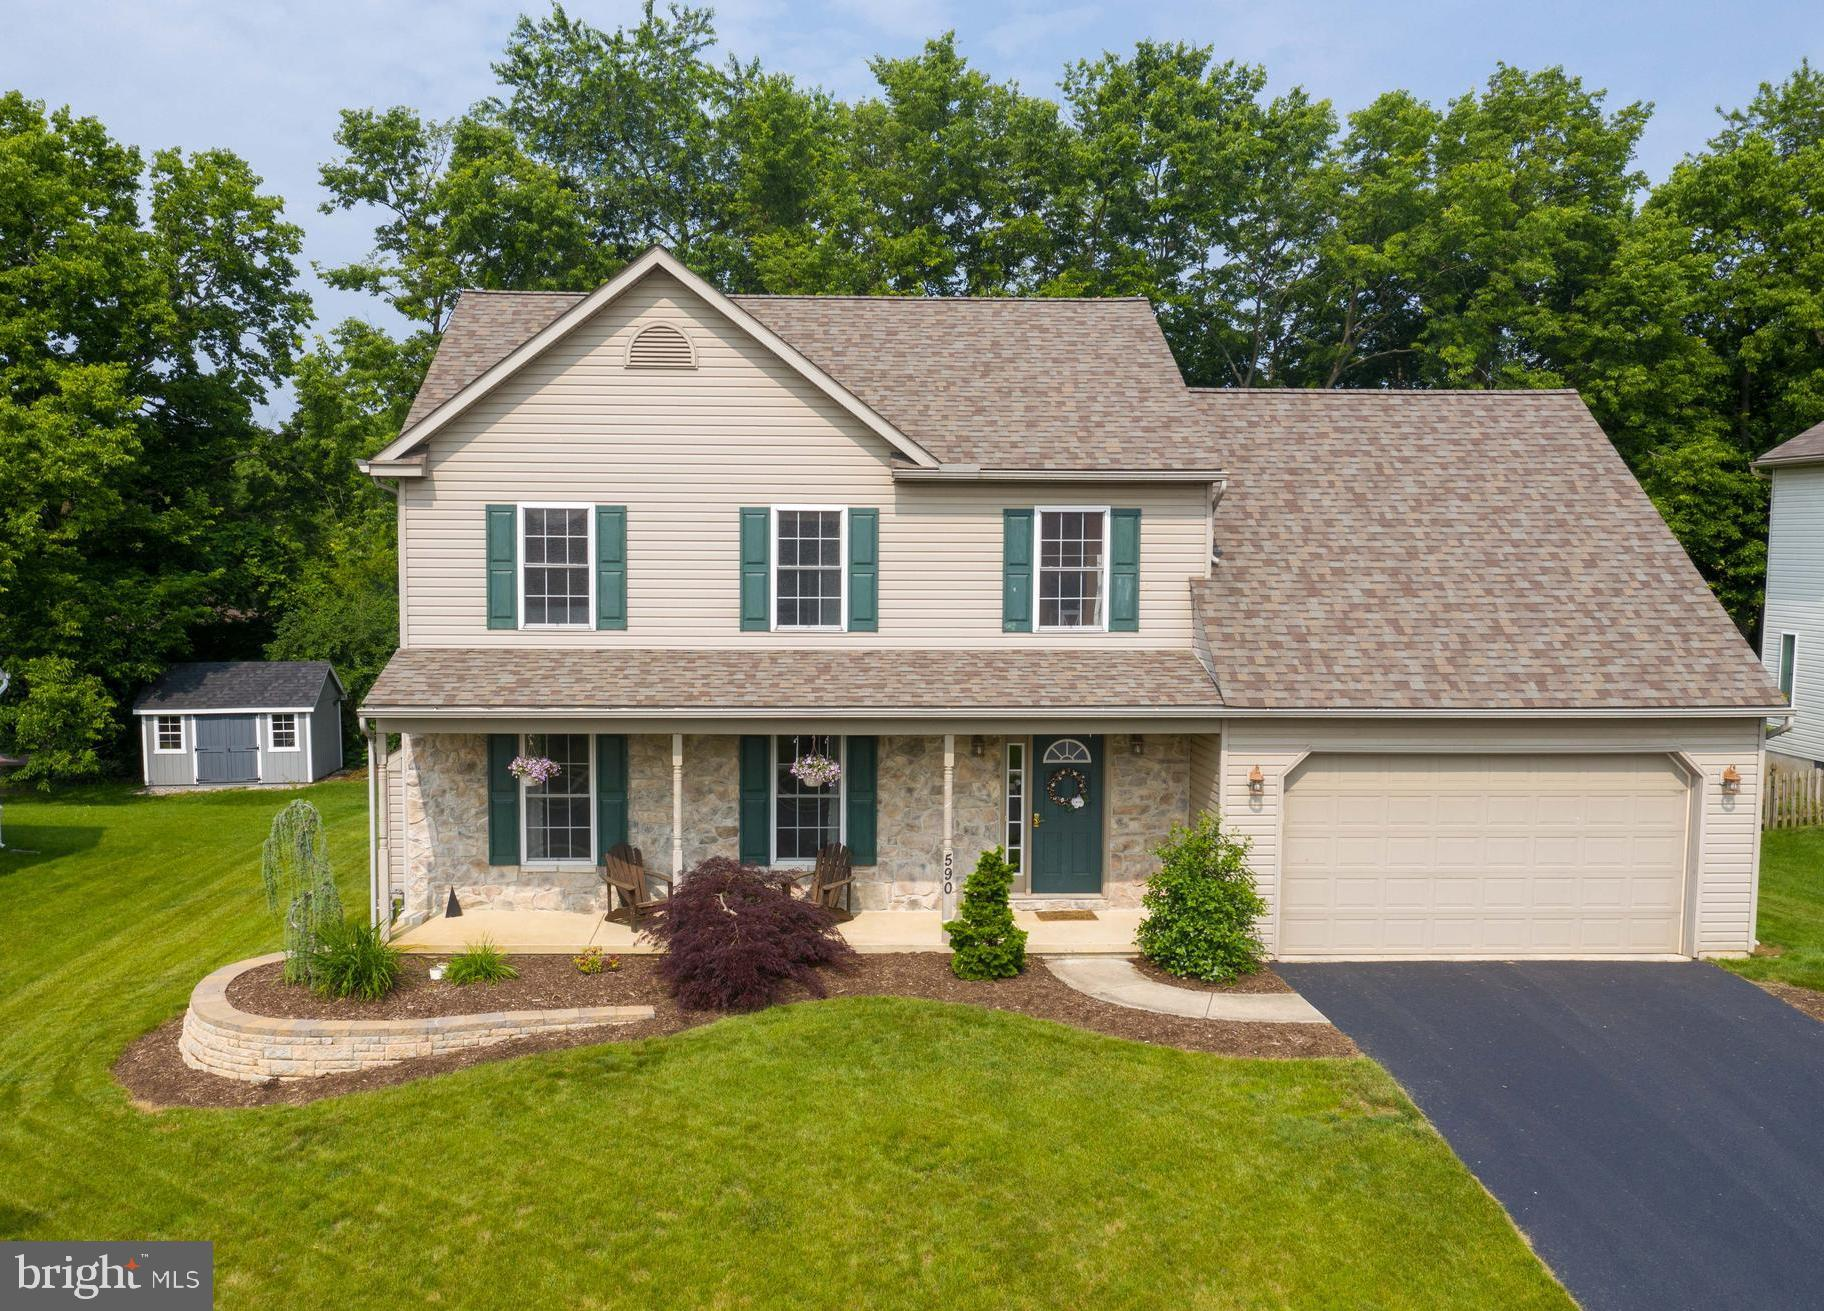 590 APPLE TREE LANE, MOUNT WOLF, PA 17347